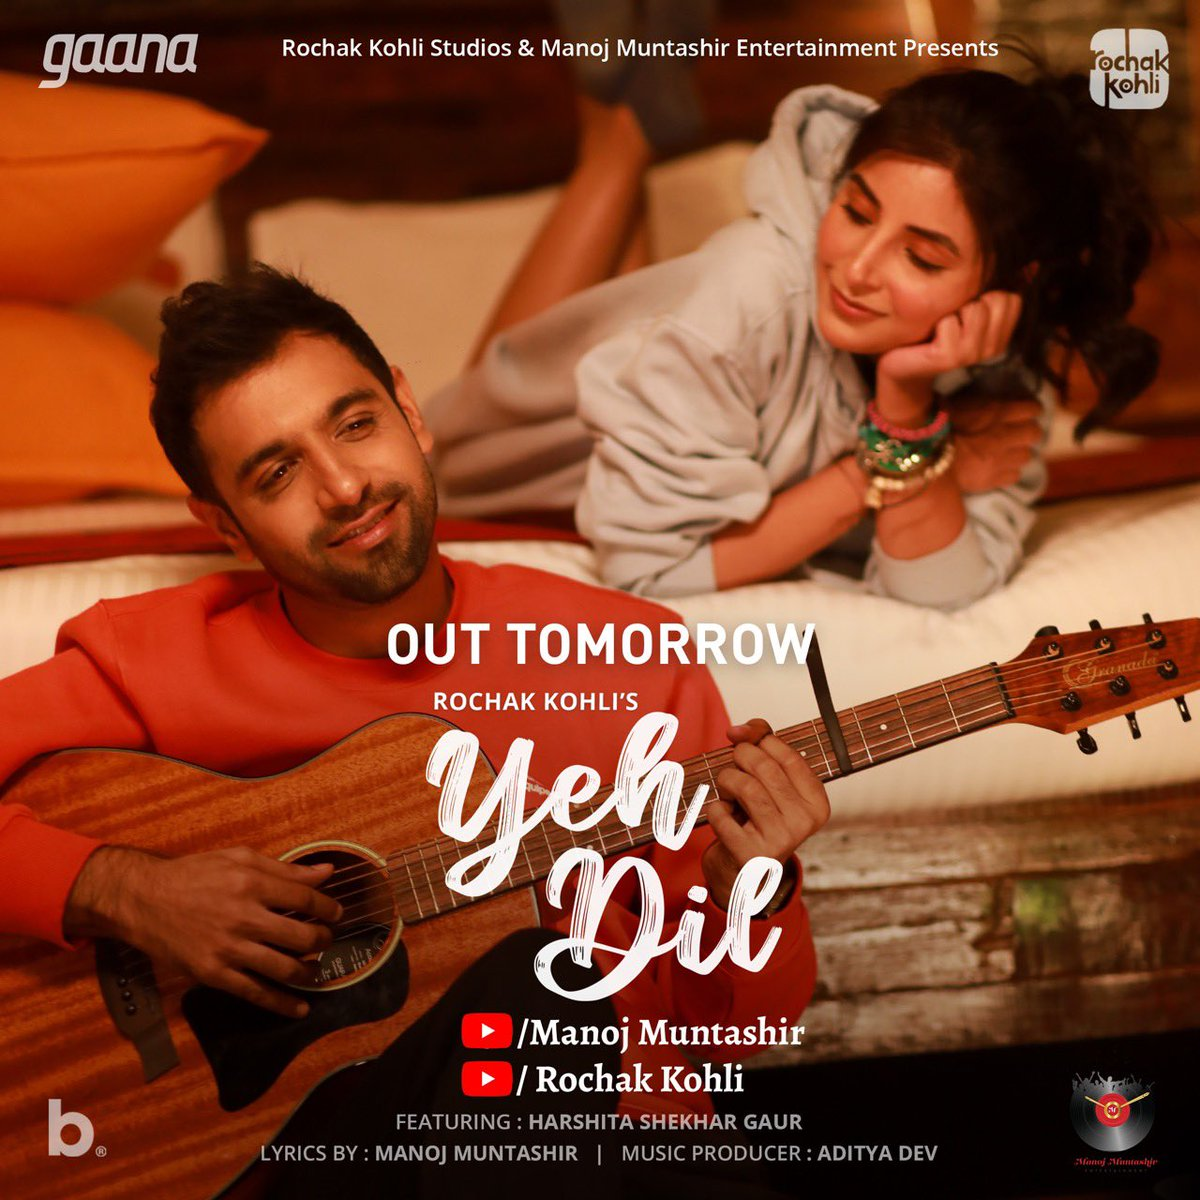 Yeh Dil will be out tomorrow!!! #YehDil #Youtube #ManojMuntashir #RochakKohli